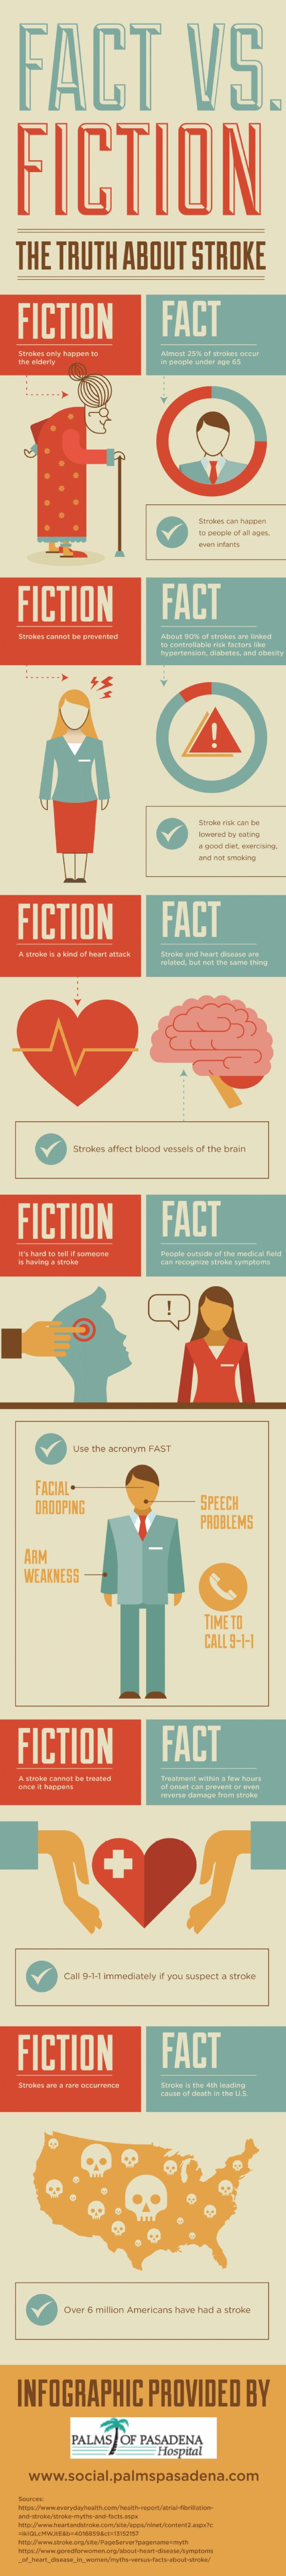 Fiction The Truth About Stroke shared by